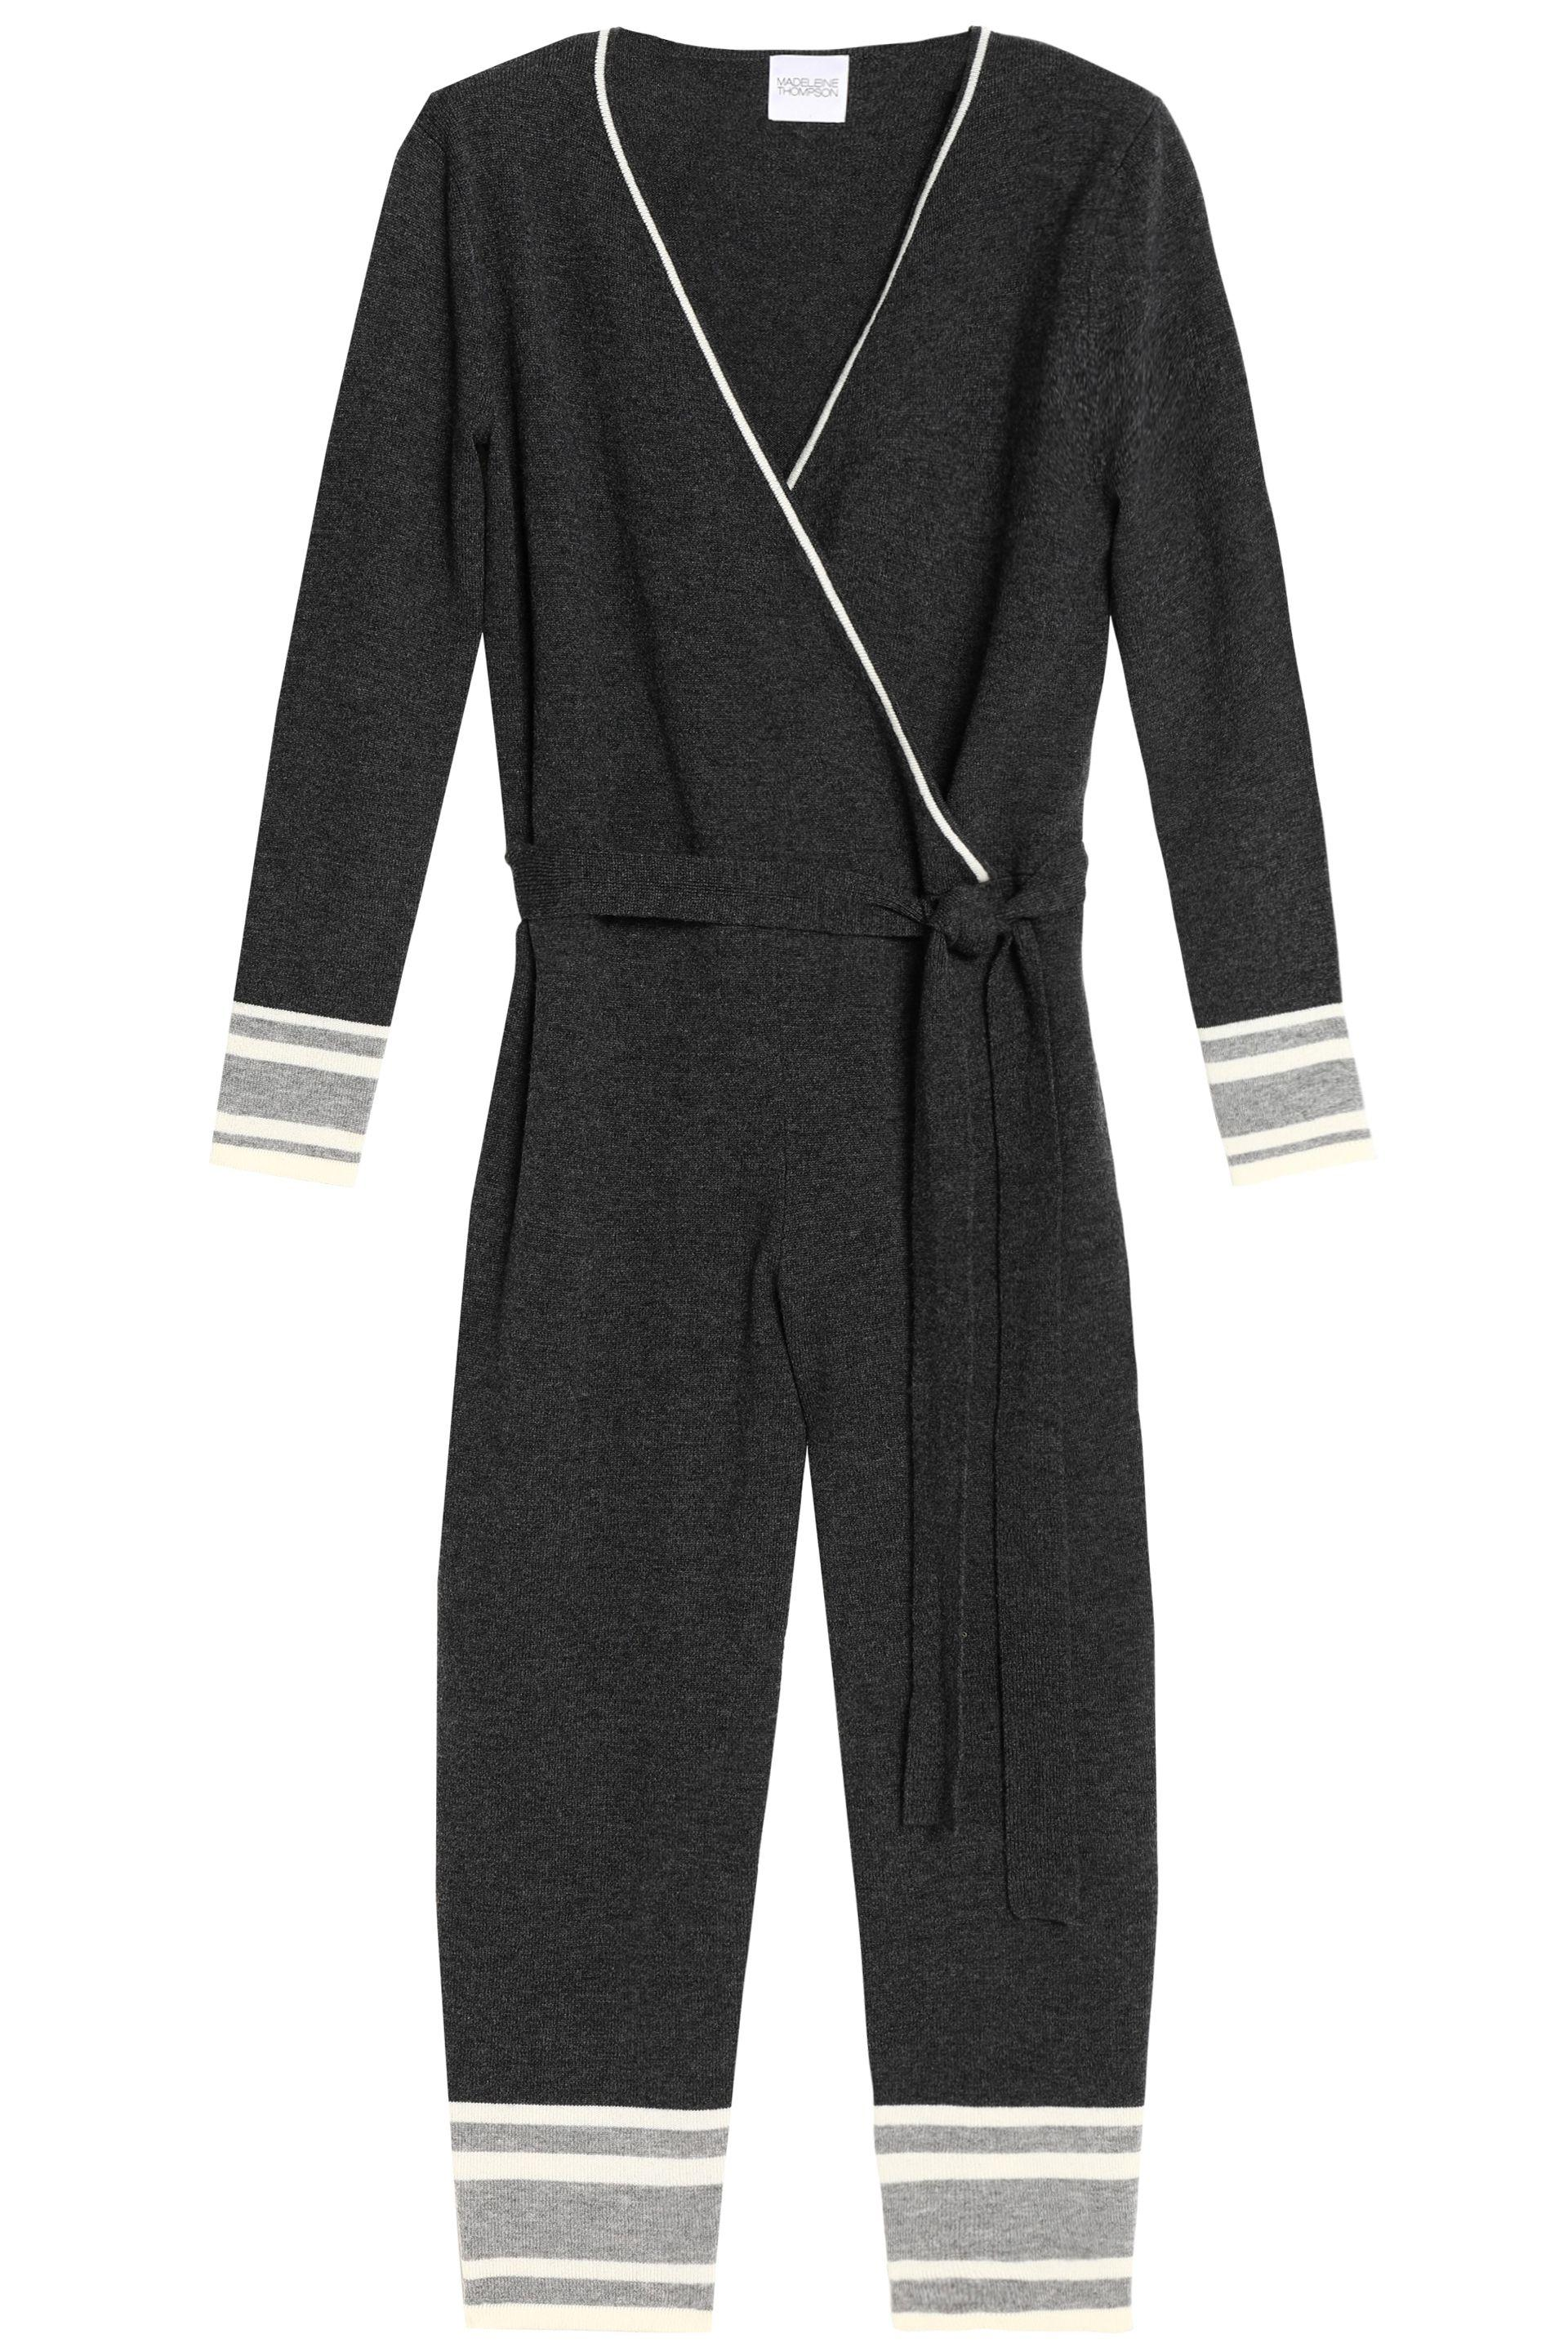 Madeleine Thompson Woman Wrap-effect Wool And Cashmere-blend Jumpsuit Dark Gray Size M Madeleine Thompson Discount 2018 New Discount Clearance Cheap Sale Release Dates ykdRard2Ts